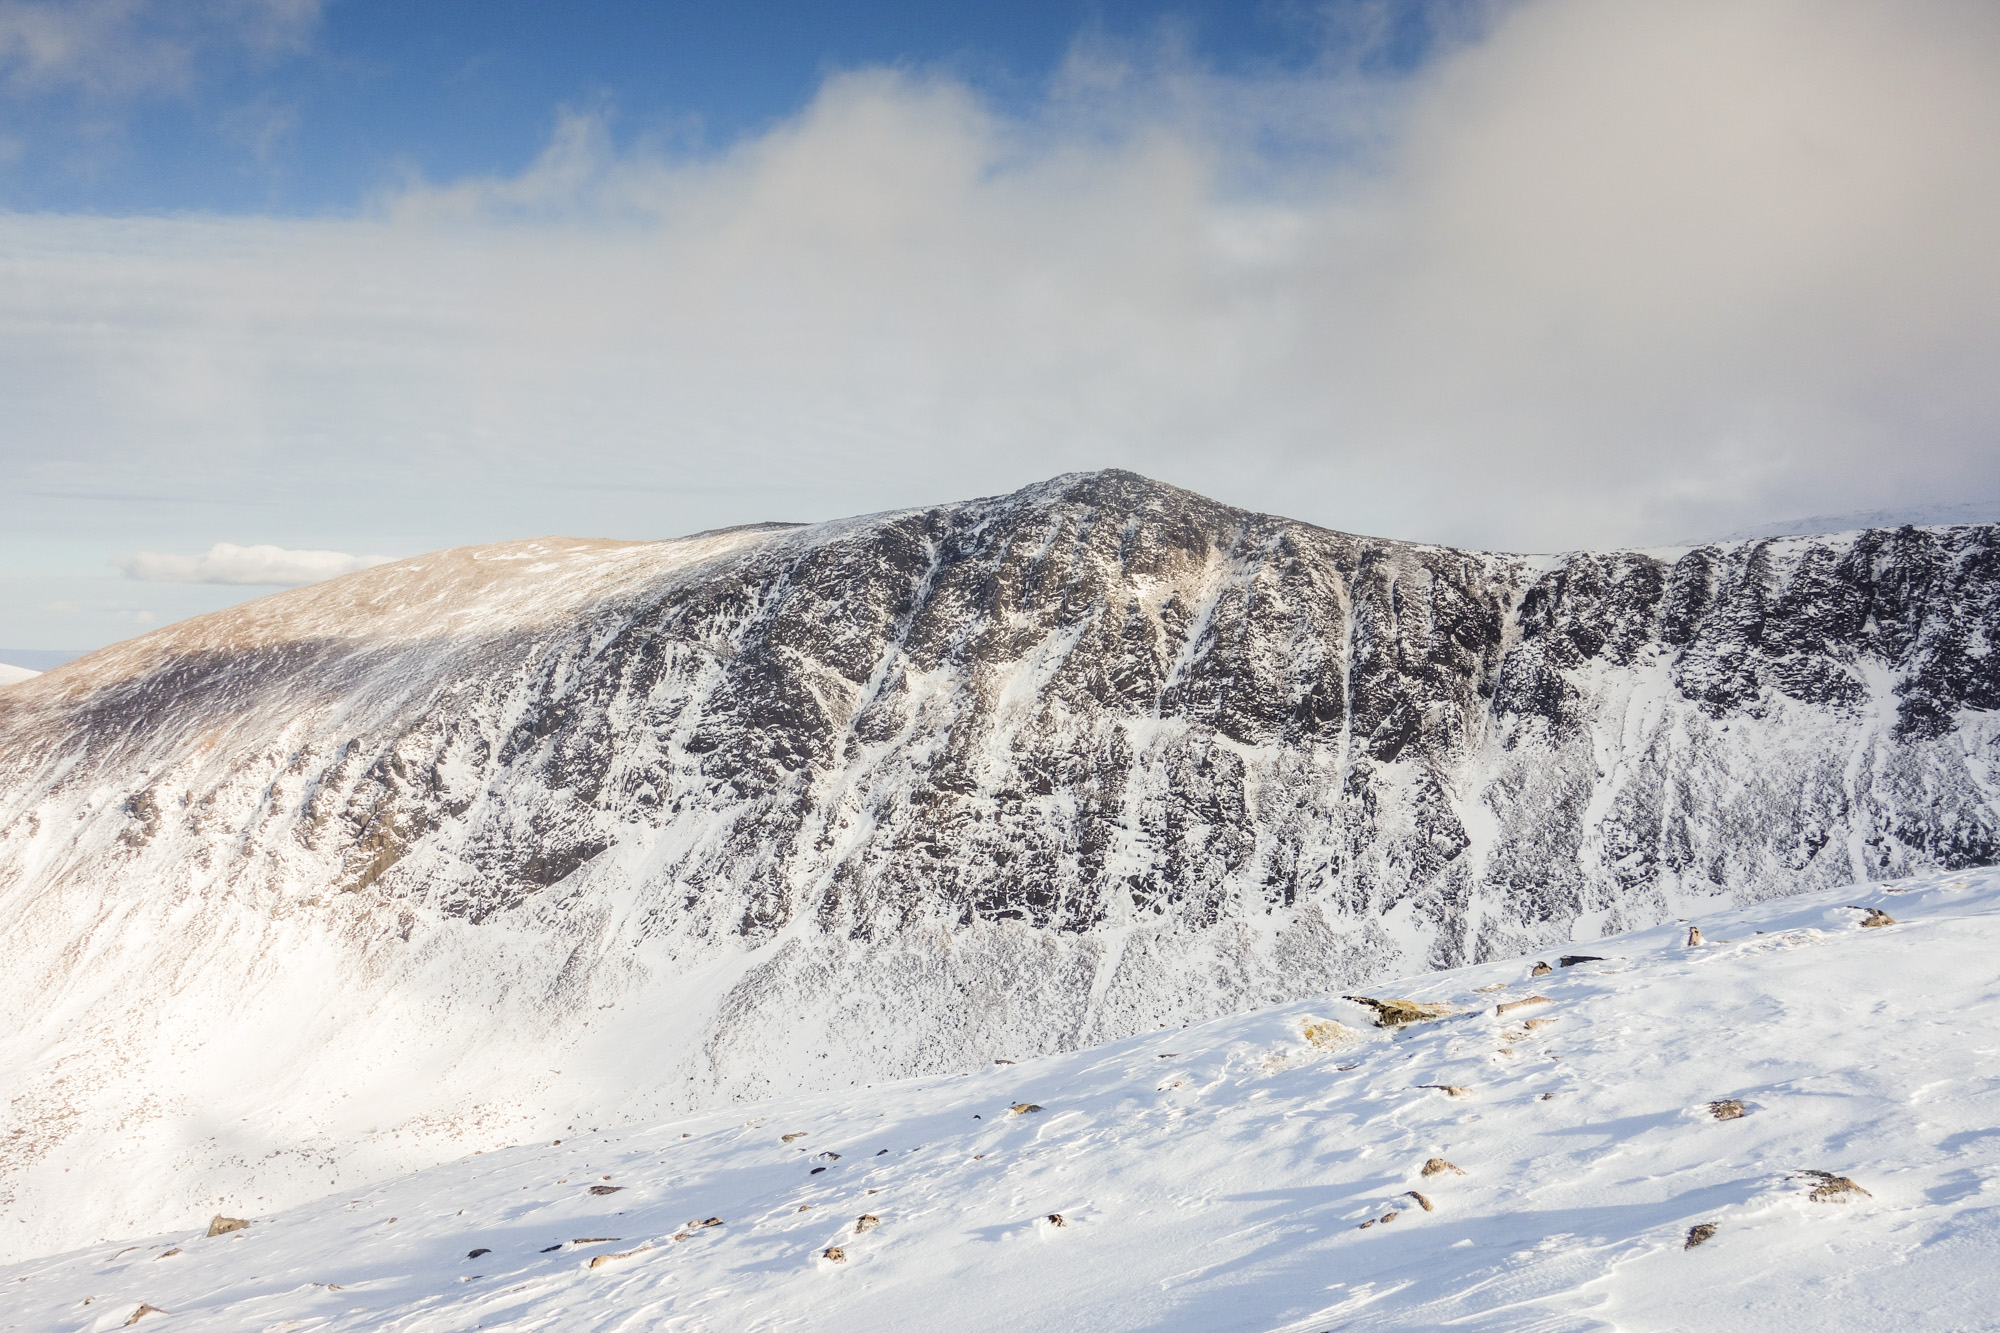 A lean and icy Lurchers Crag as seen from the approach to Braeriach. Window Guly is the wide ice streak left of the obvious Central Gully. Photo credit: Andy Inglis